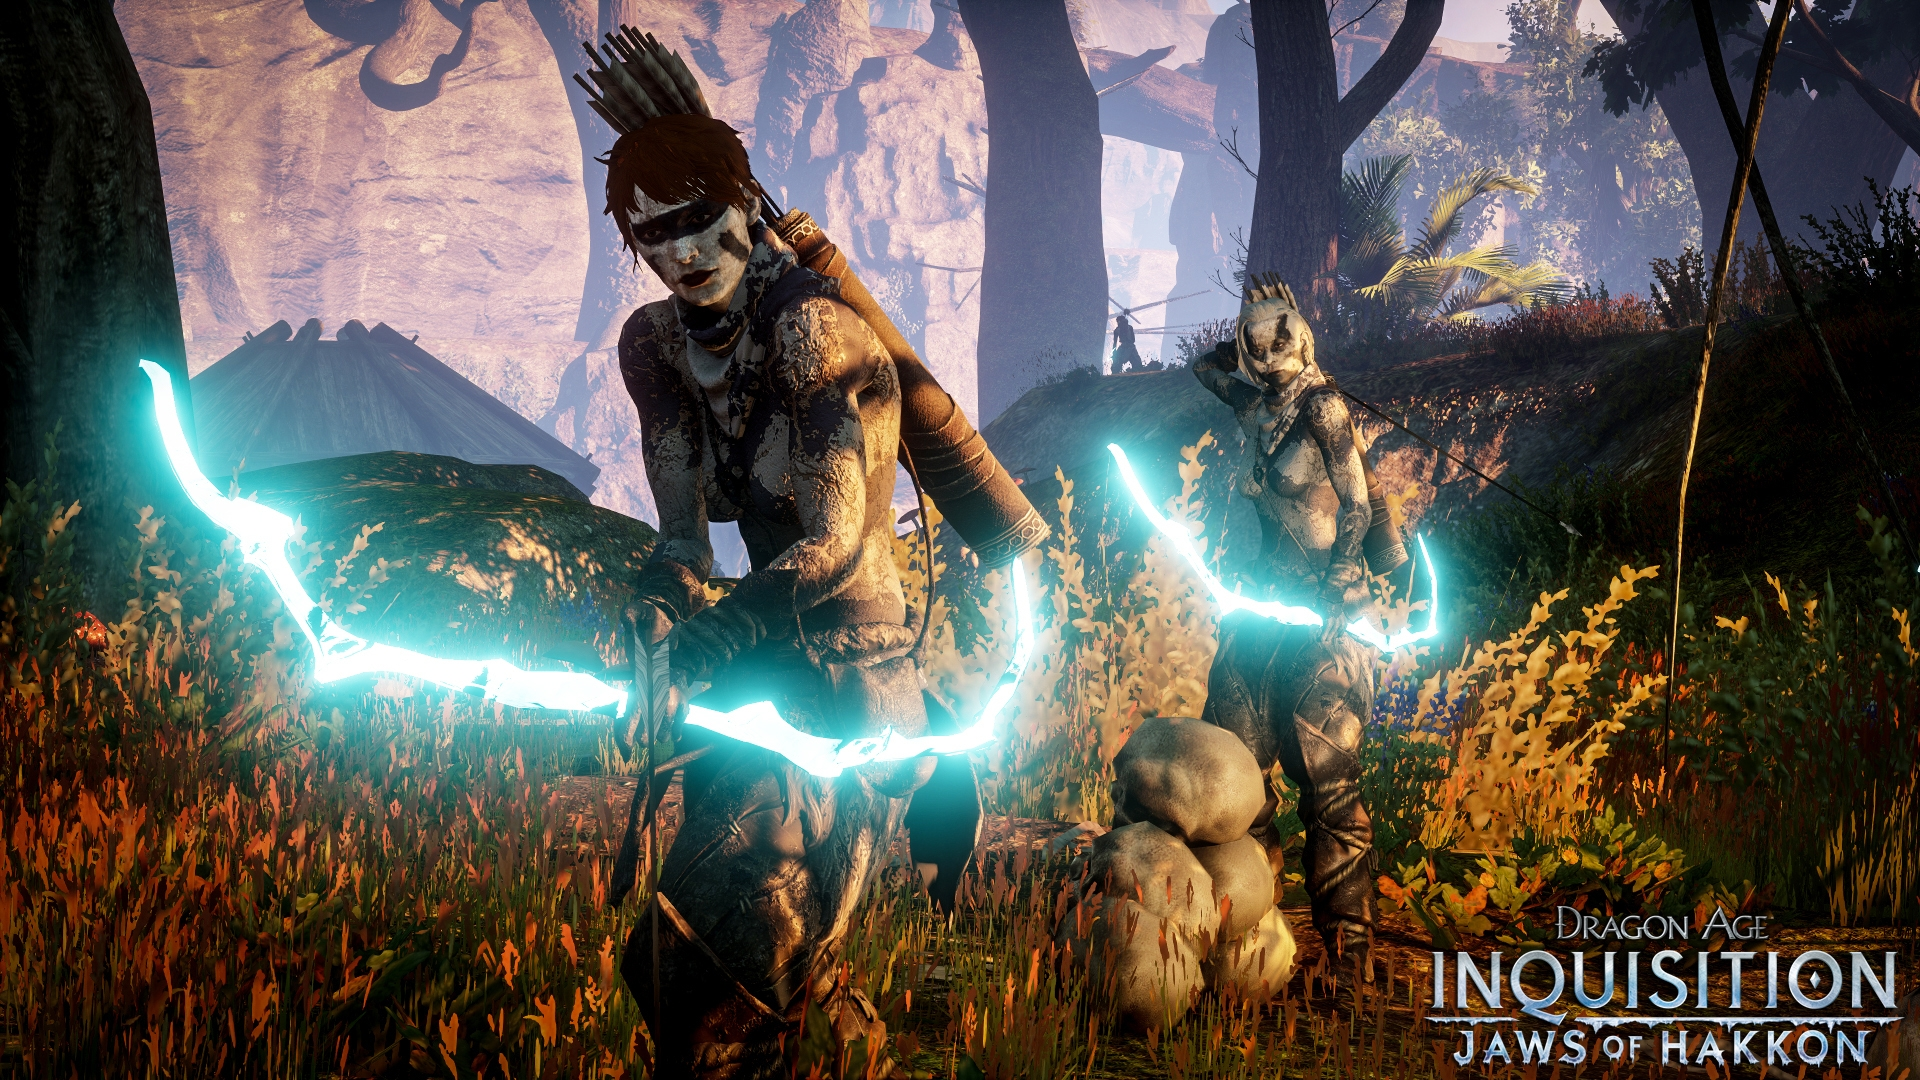 dragon age inquisition jaws of hakkon 5